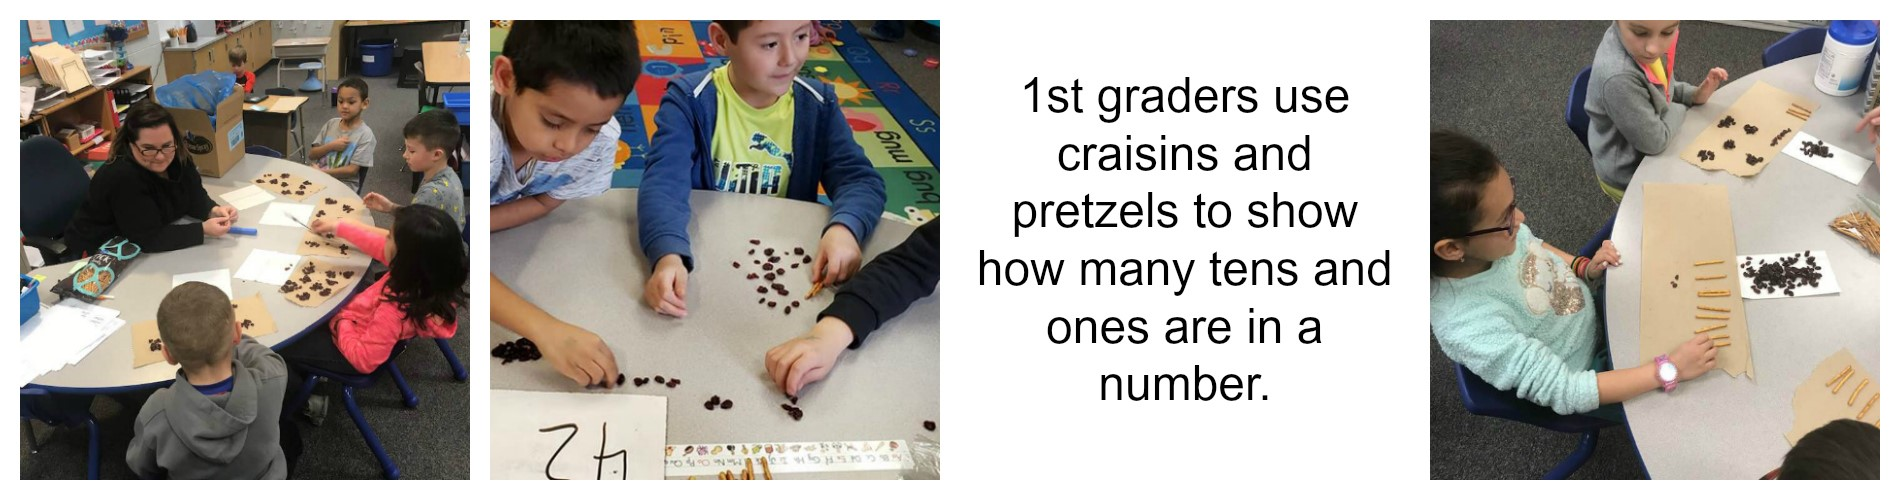 Craisins and pretzels used for Math.